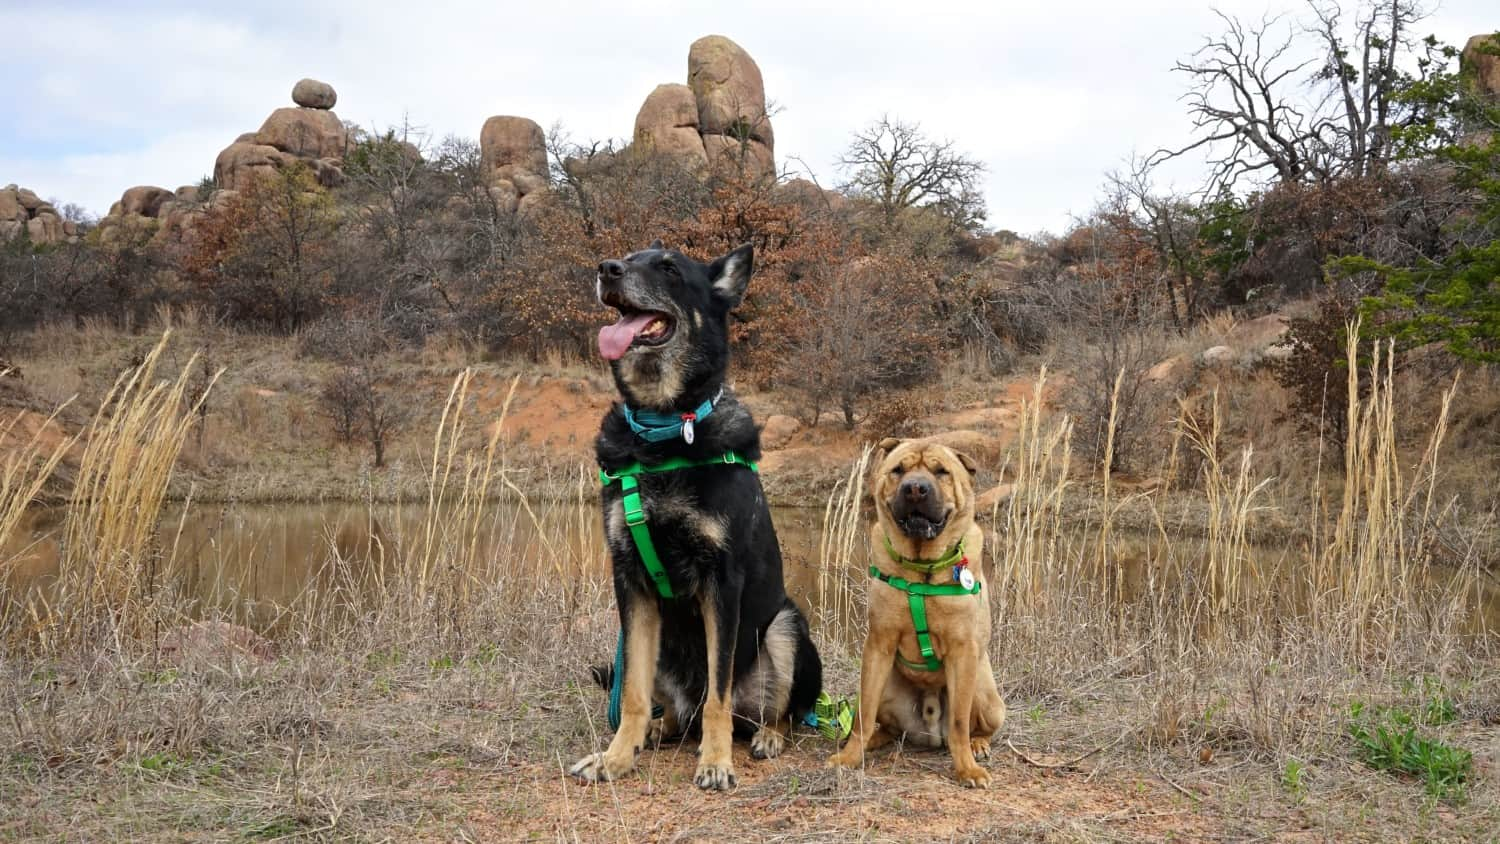 Oklahoma's Top Pet Friendly Attraction: Wichita Mountains Wildlife Refuge